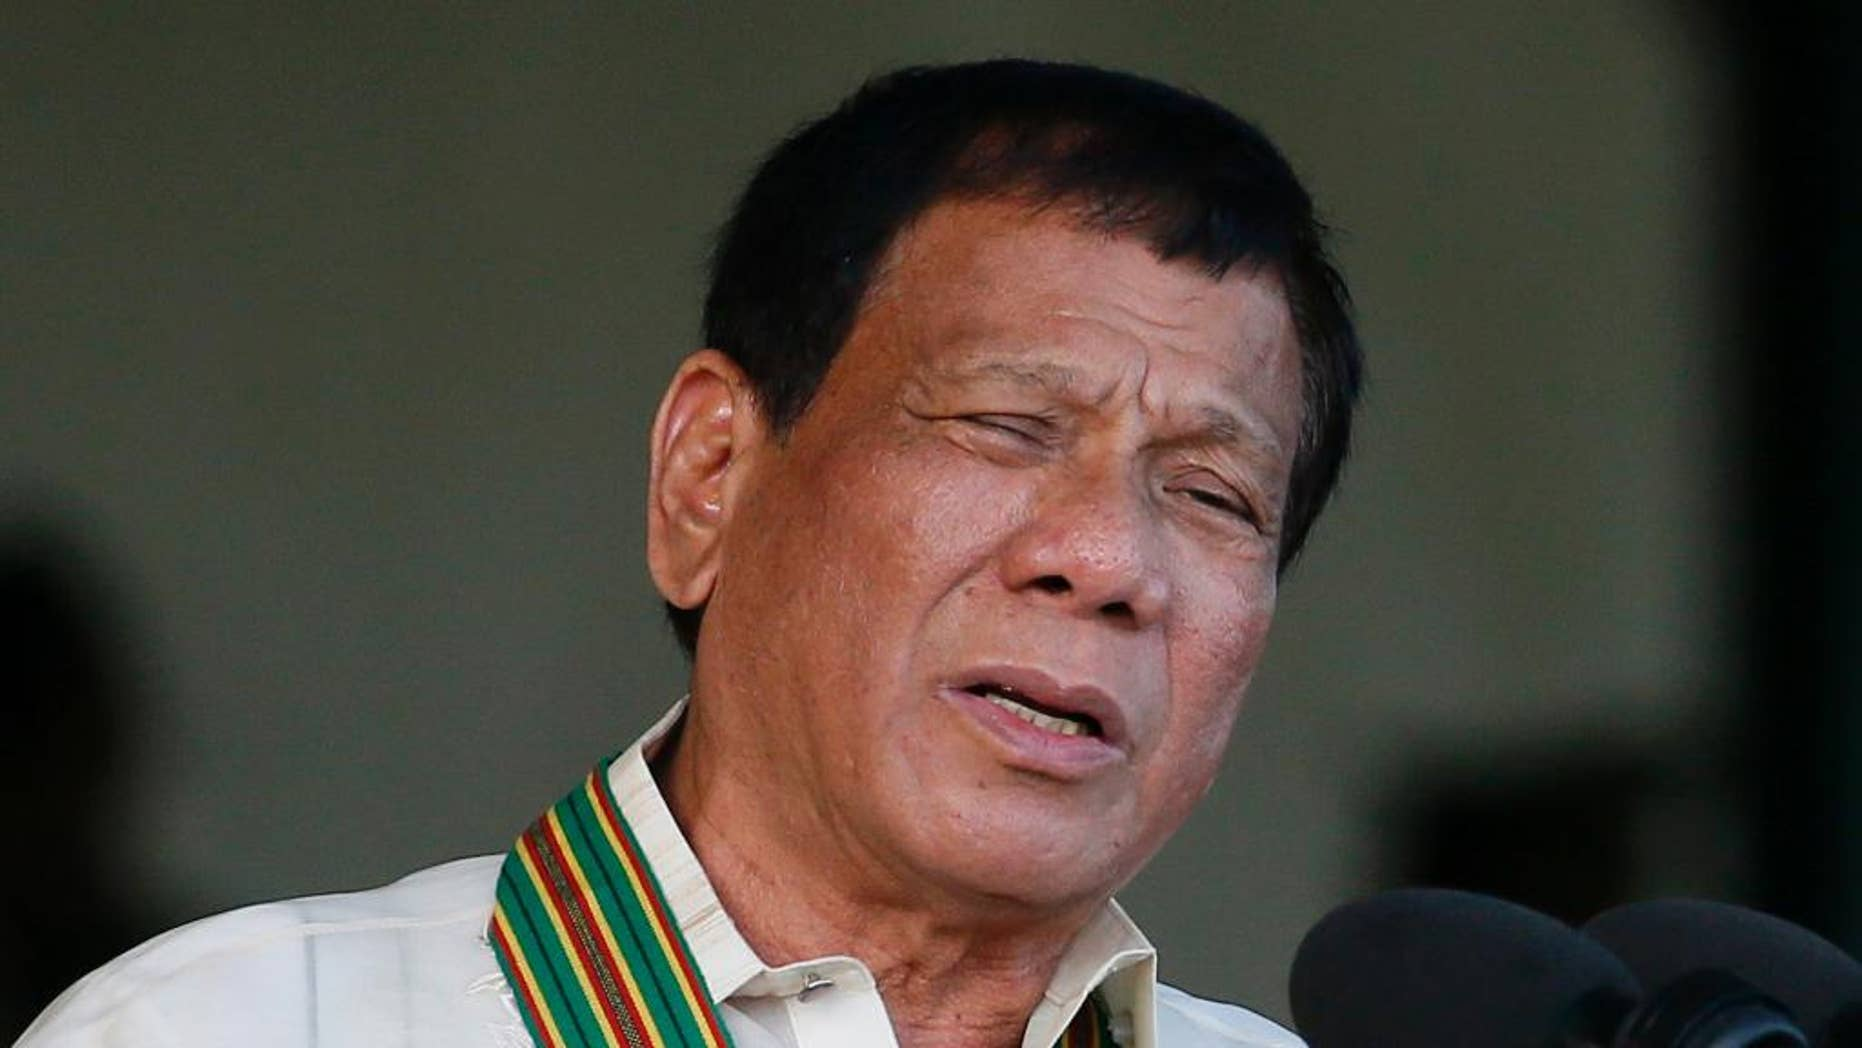 FILE - In this Tuesday, April 4, 2017 file photo, Philippine President Rodrigo Duterte gestures while addressing army troopers during the 120th anniversary celebration of the Philippine Army at Fort Bonifacio in suburban Taguig city, east of Manila, Philippines. Results of an independent poll released Wednesday, April 5 showed a drop in the number of Filipinos who trust President Rodrigo Duterte, although he was still considered trustworthy by three-quarters of the respondents despite an impeachment complaint pending against him. (AP Photo/Bullit Marquez, File)